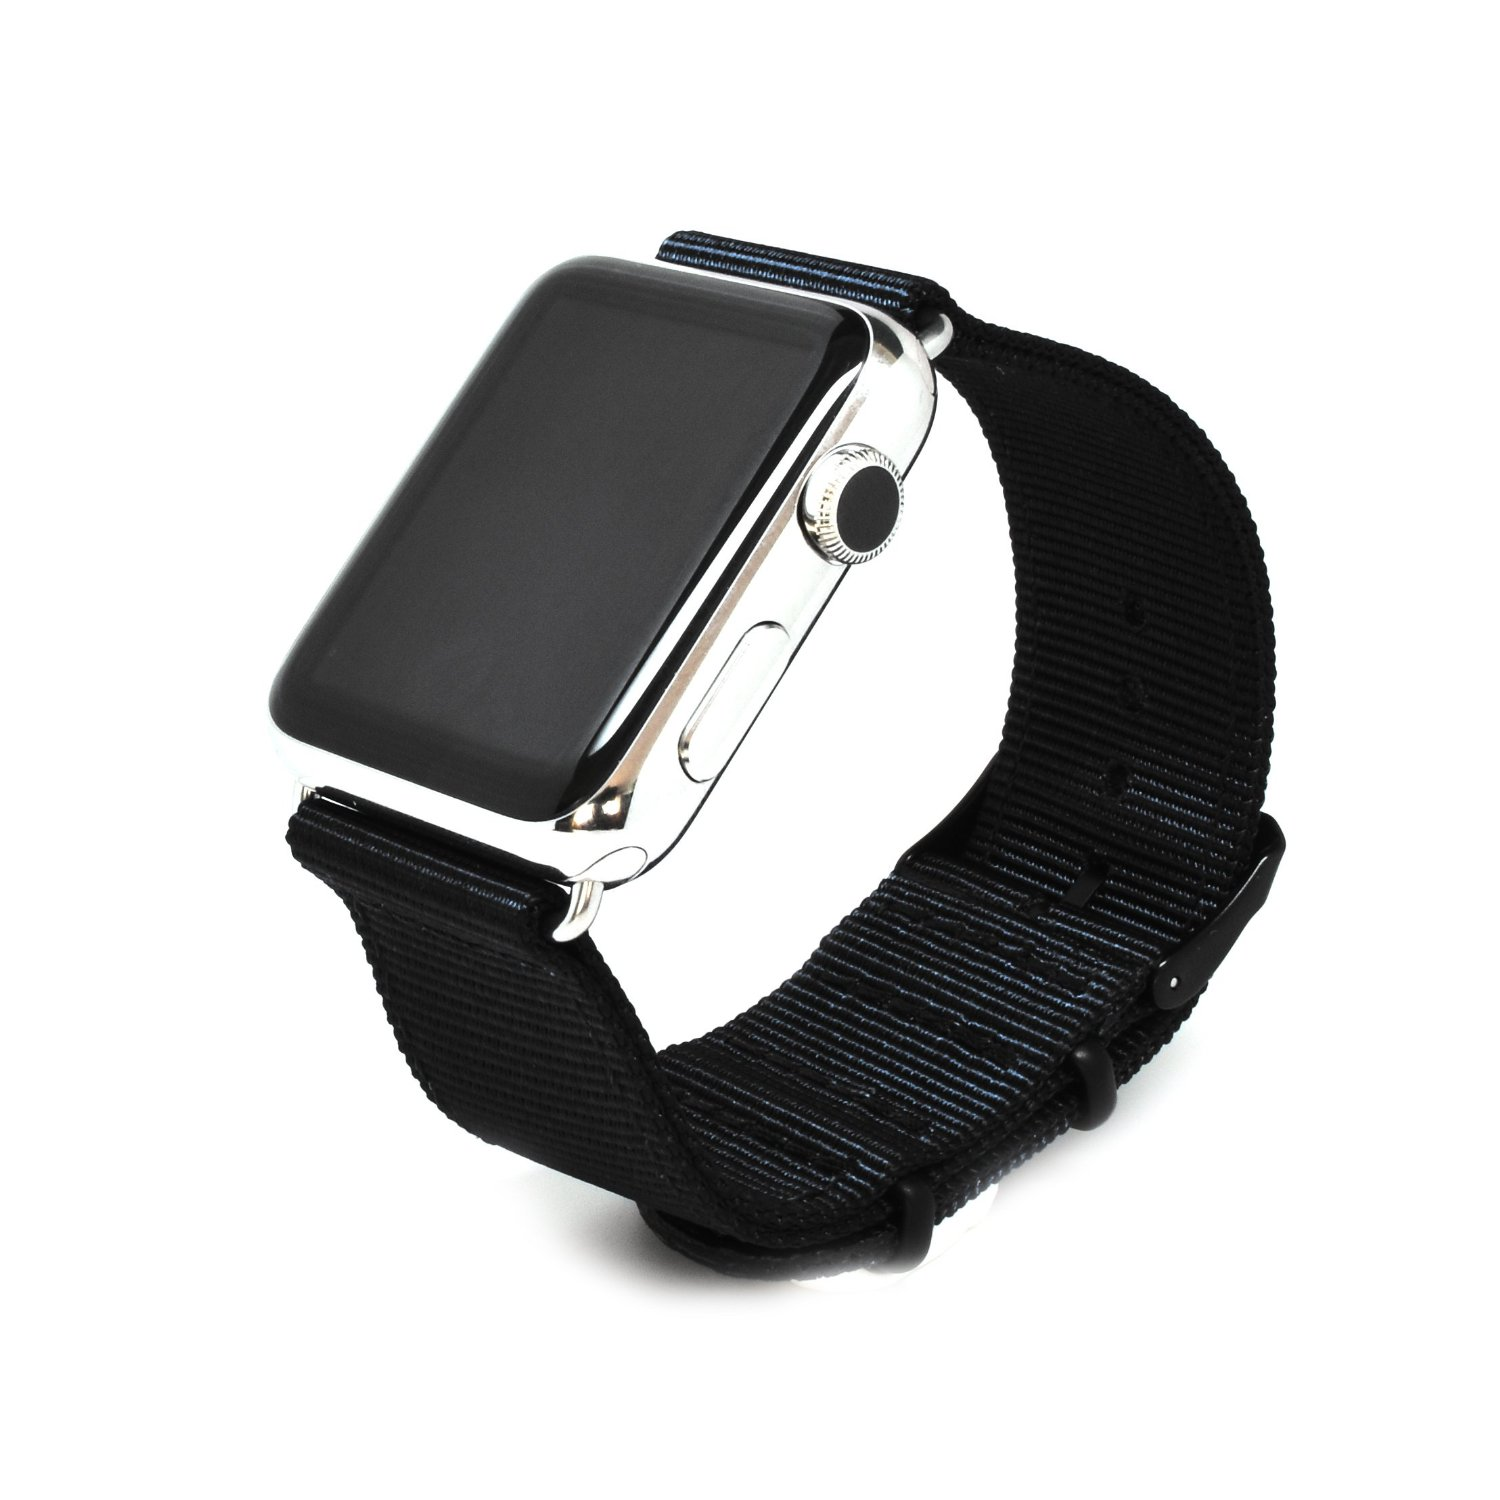 Nato Skull 42mm Apple Watch Band Strap in Black Ballistic Nylon with PVD Metal Clasp (Connector Included)